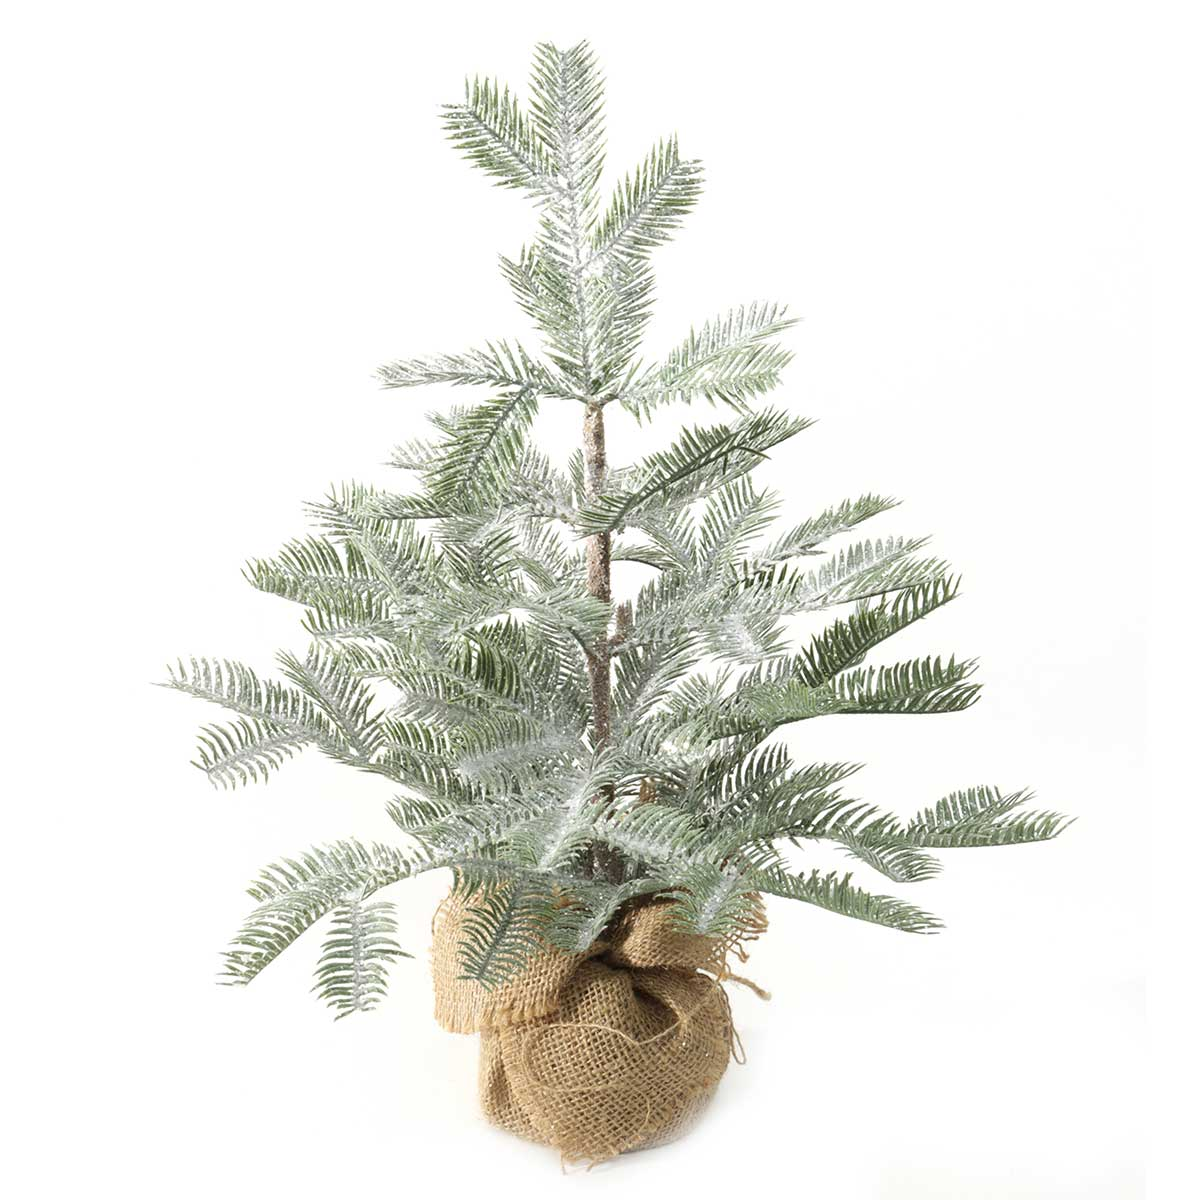 ARCTIC FIR TREE 18""